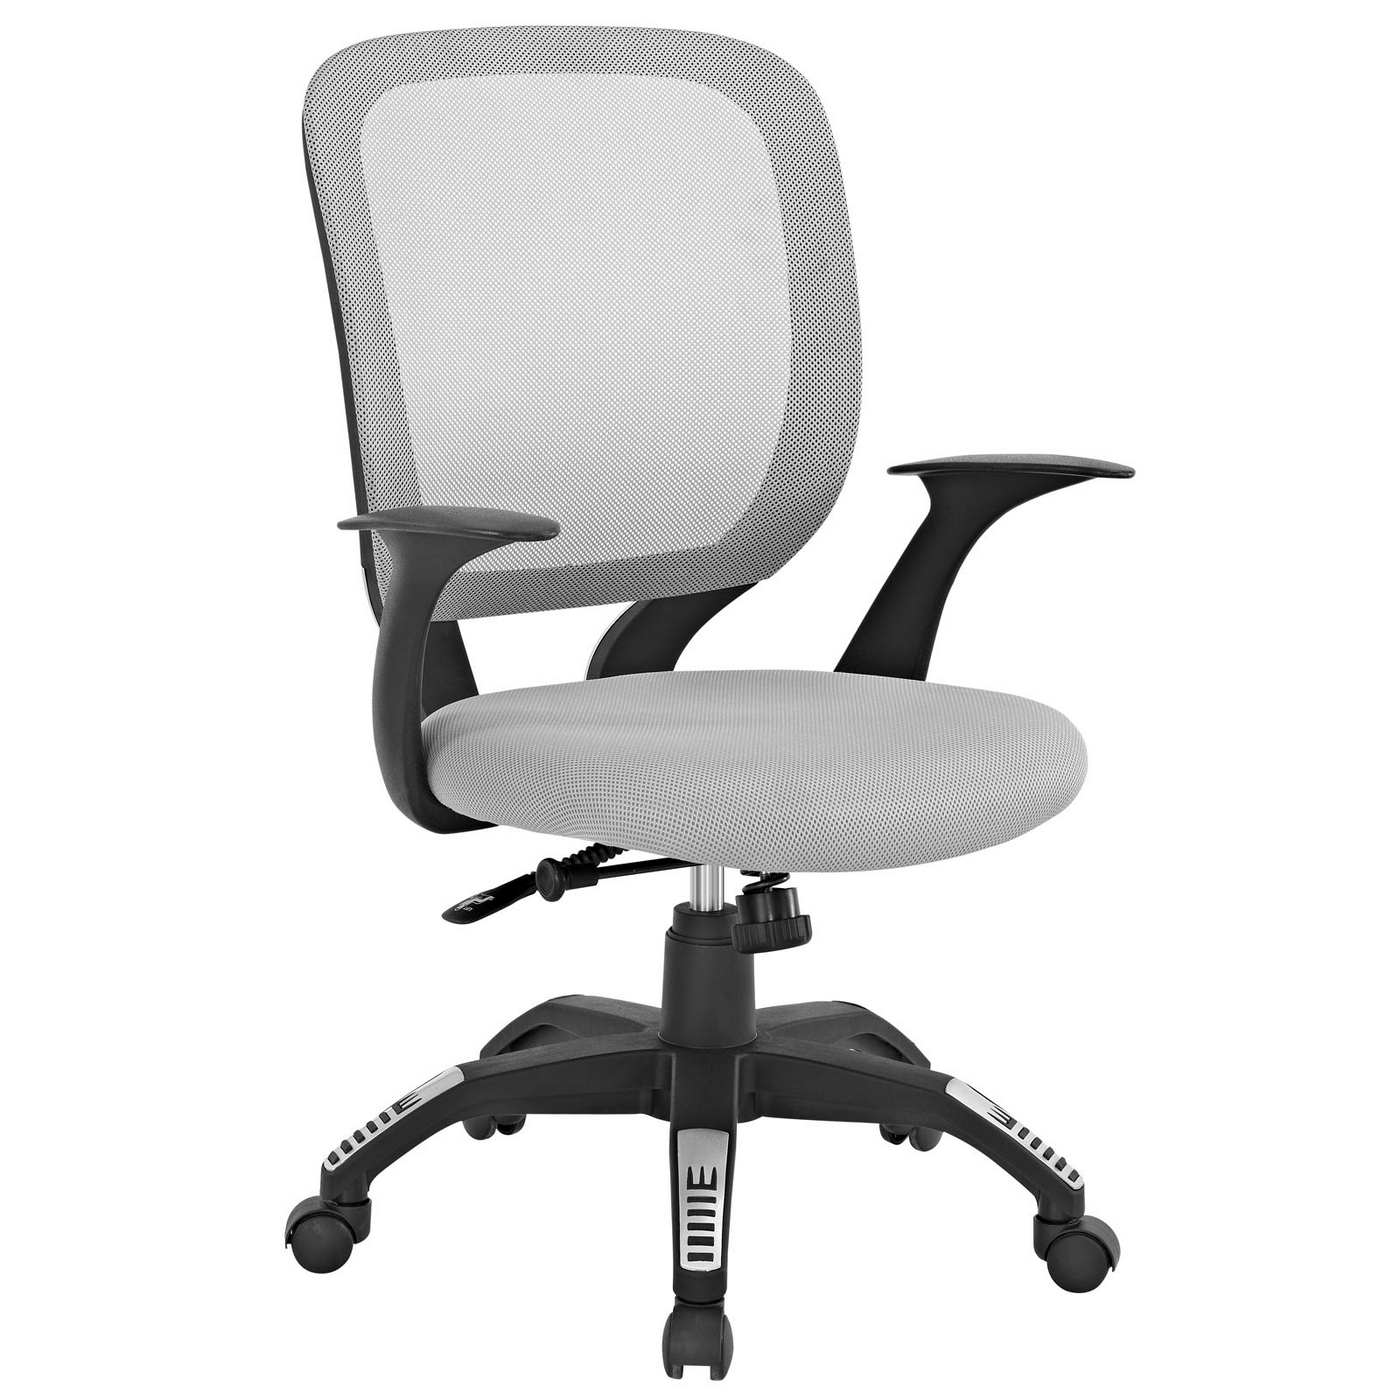 Scope Modern Mesh Back Office Chair W Adjustable Height And Tilt Gray